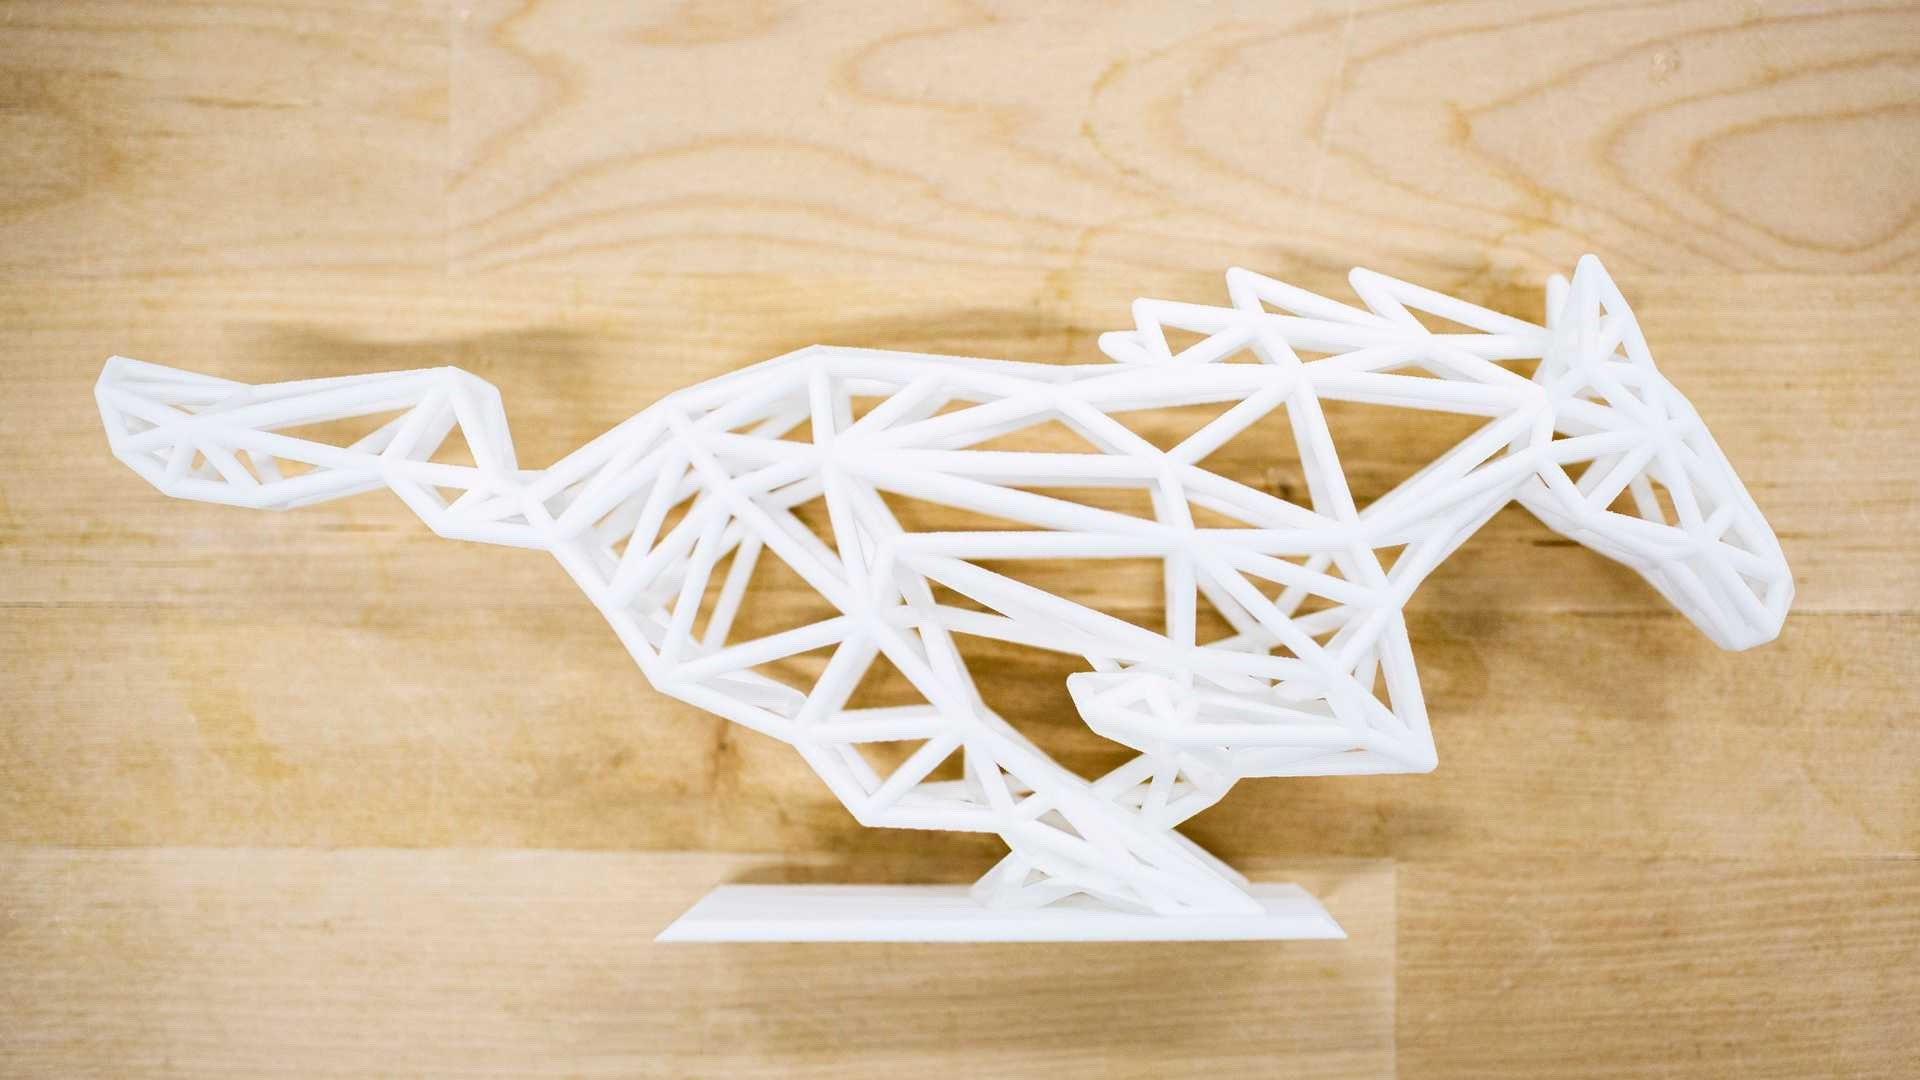 Ford_Mustang_Mach-E_3D-Printed_Sculpture-0006